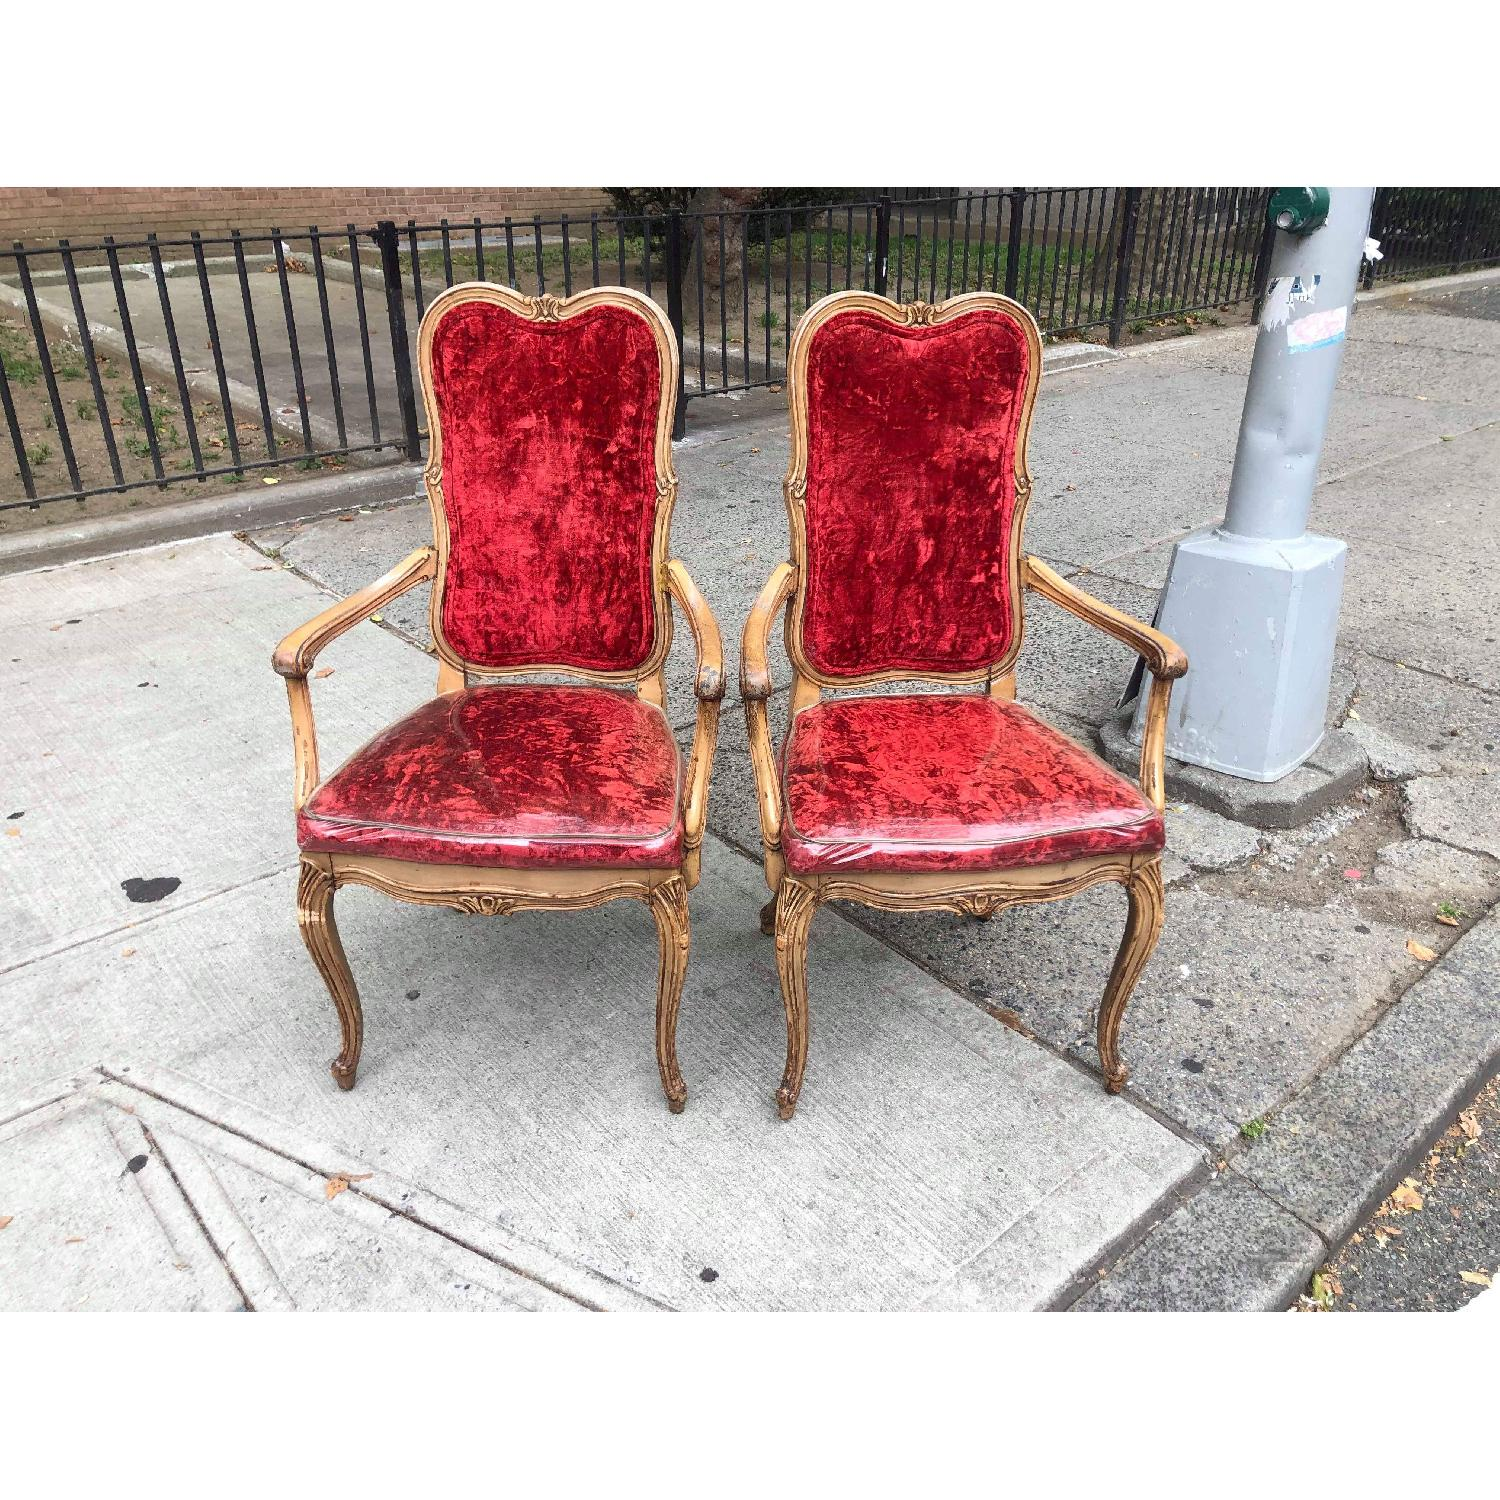 Vintage French Style Red Armchairs - image-1